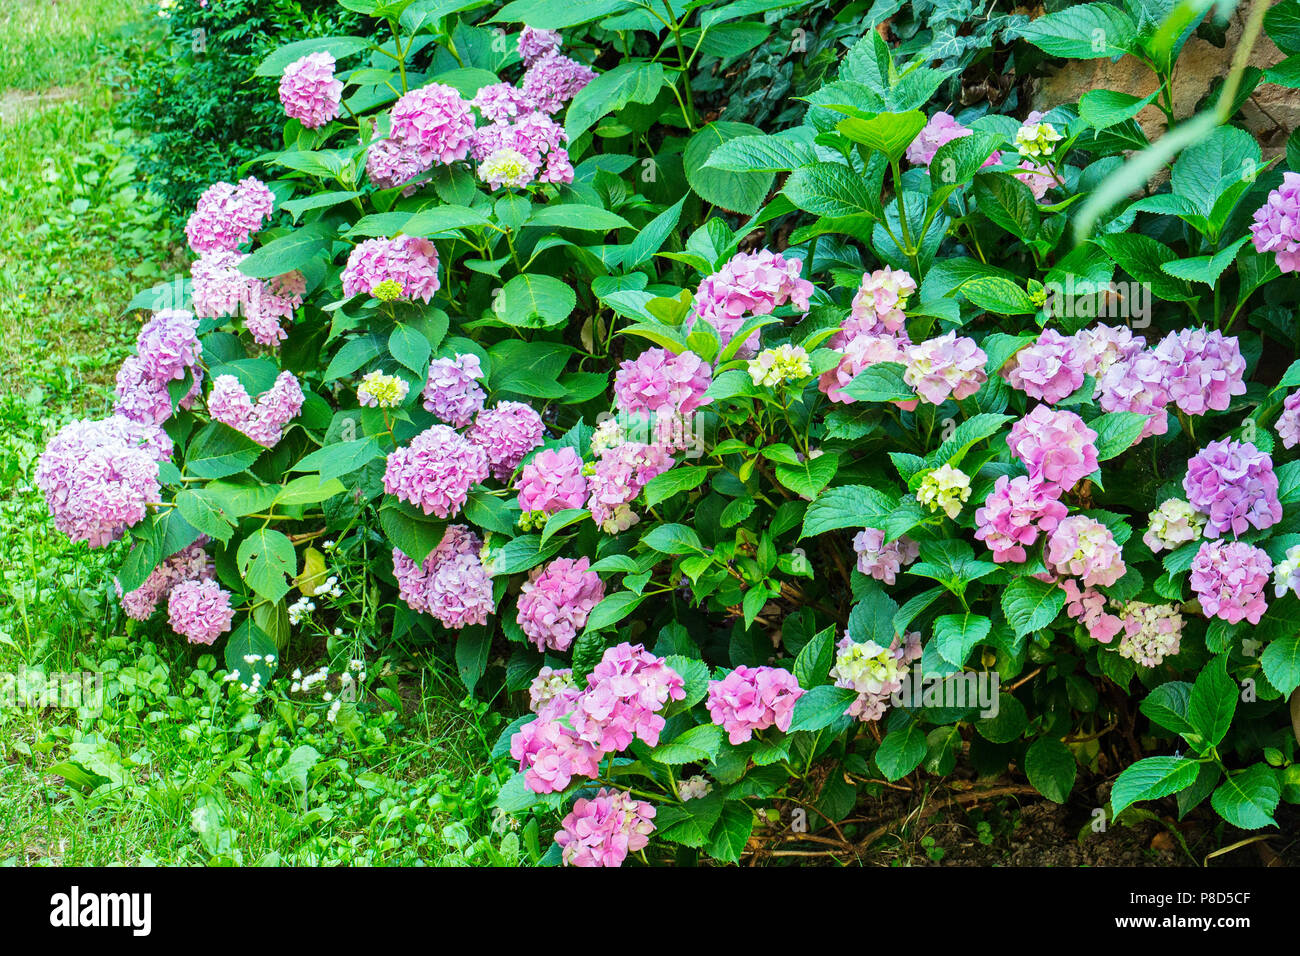 Beautiful Bush With Small Flowers Of Pink Color And Green Large